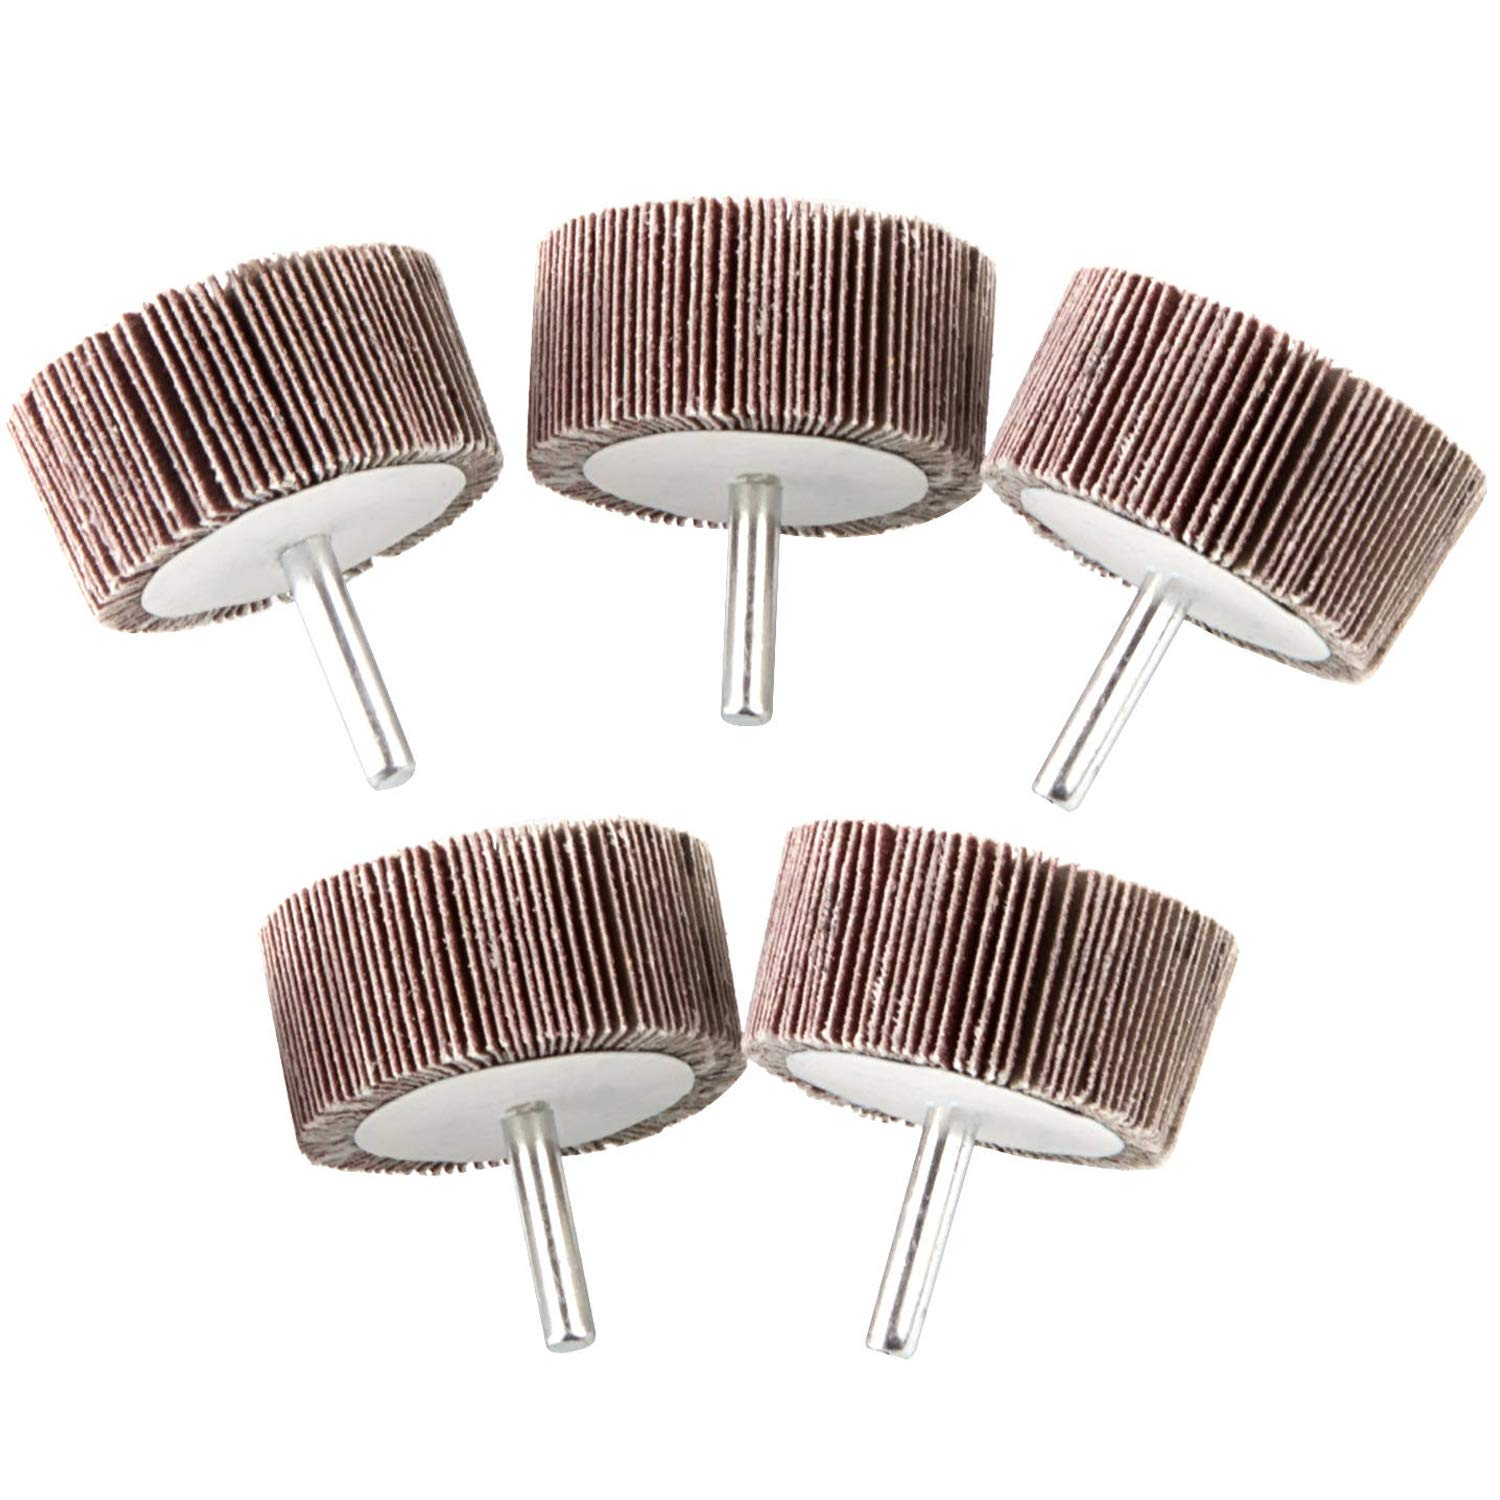 5 Pack 2x1x 1/4 inch Shank Mounted Flap Wheels 80 Grit Aluminum Oxide Abrasive Sanding Flap Wheels for Remove Rust, Weld Burr Polishing Flat - Abrasive Grinding Tool Fit for Most of Drill